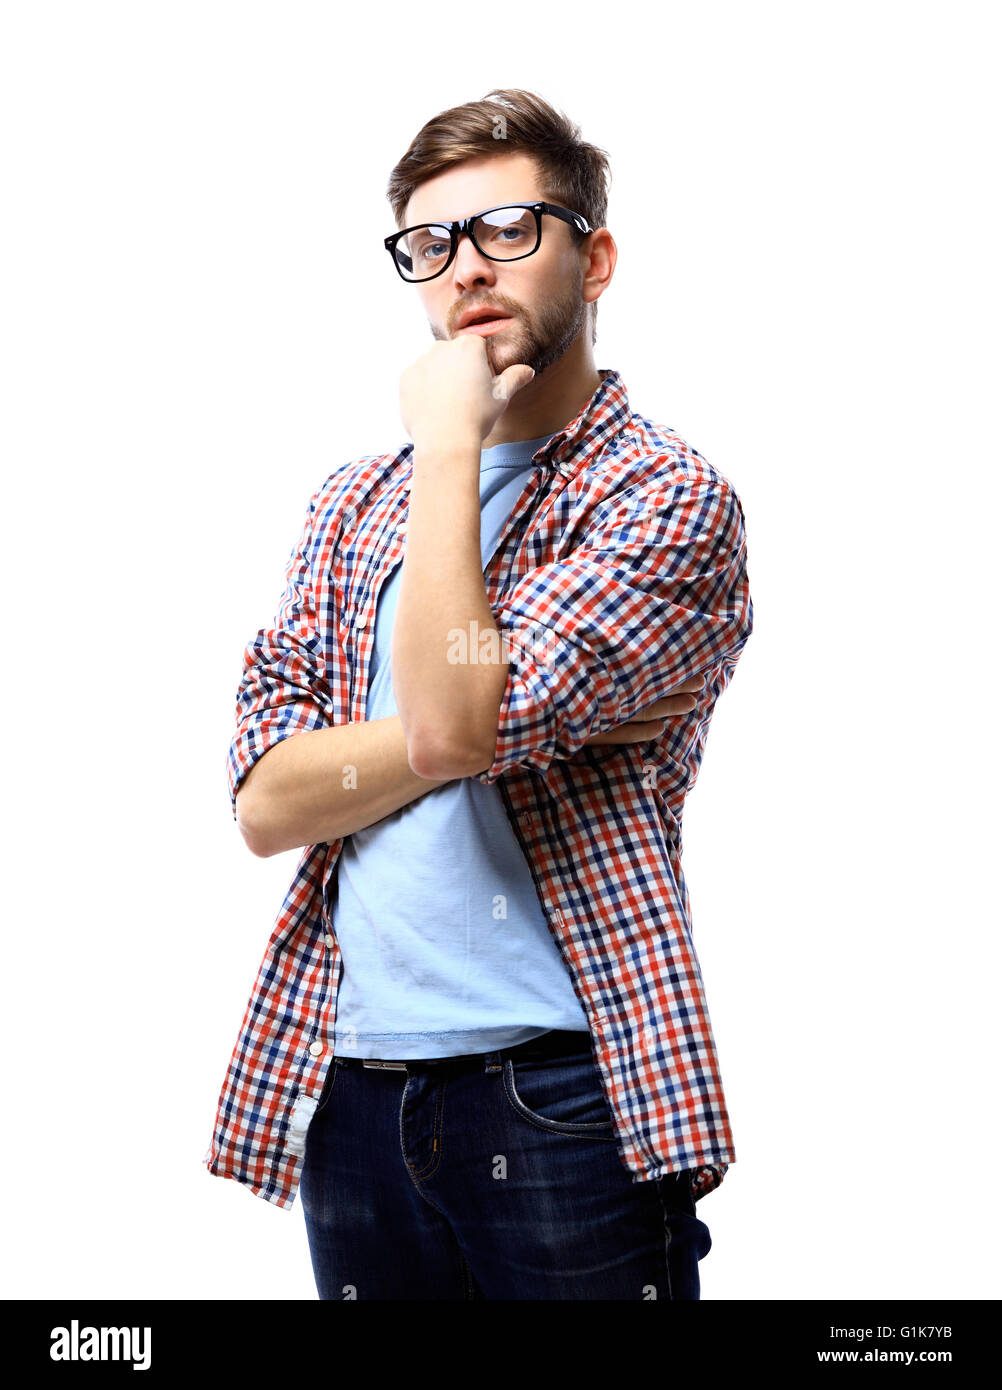 24e120ea47f Latin hipster guy wearing glasses with his arms crossed and smiling on  white background